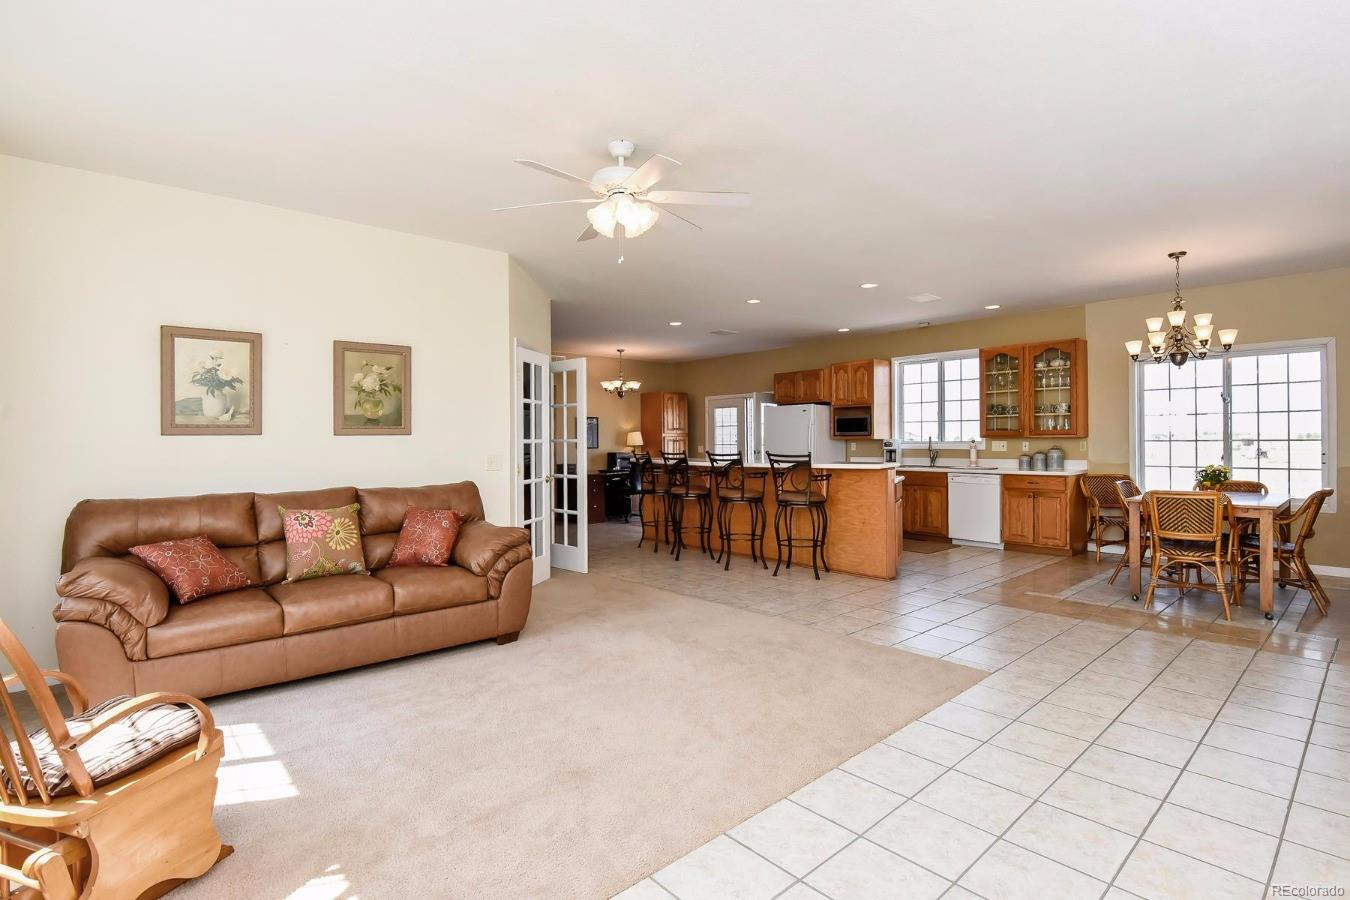 Living Room Infused with Warmth and Comfort with Lots of Usable Space for Change